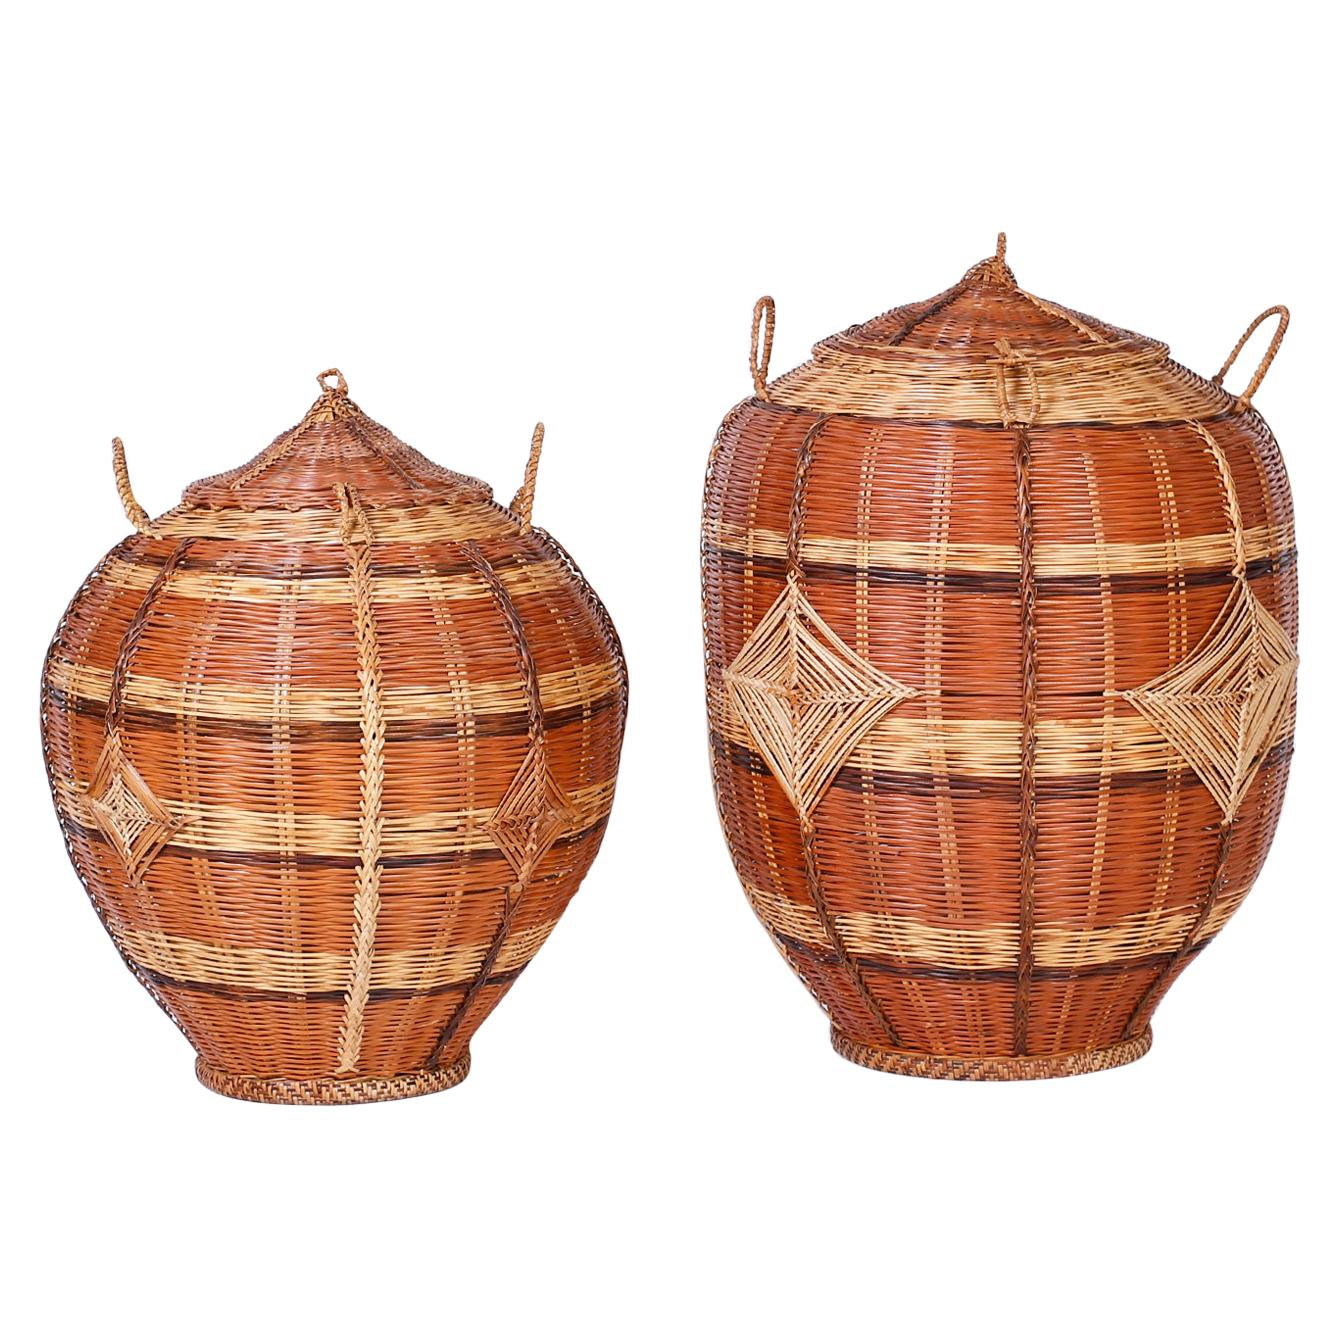 Two Lidded Woven Reed Baskets